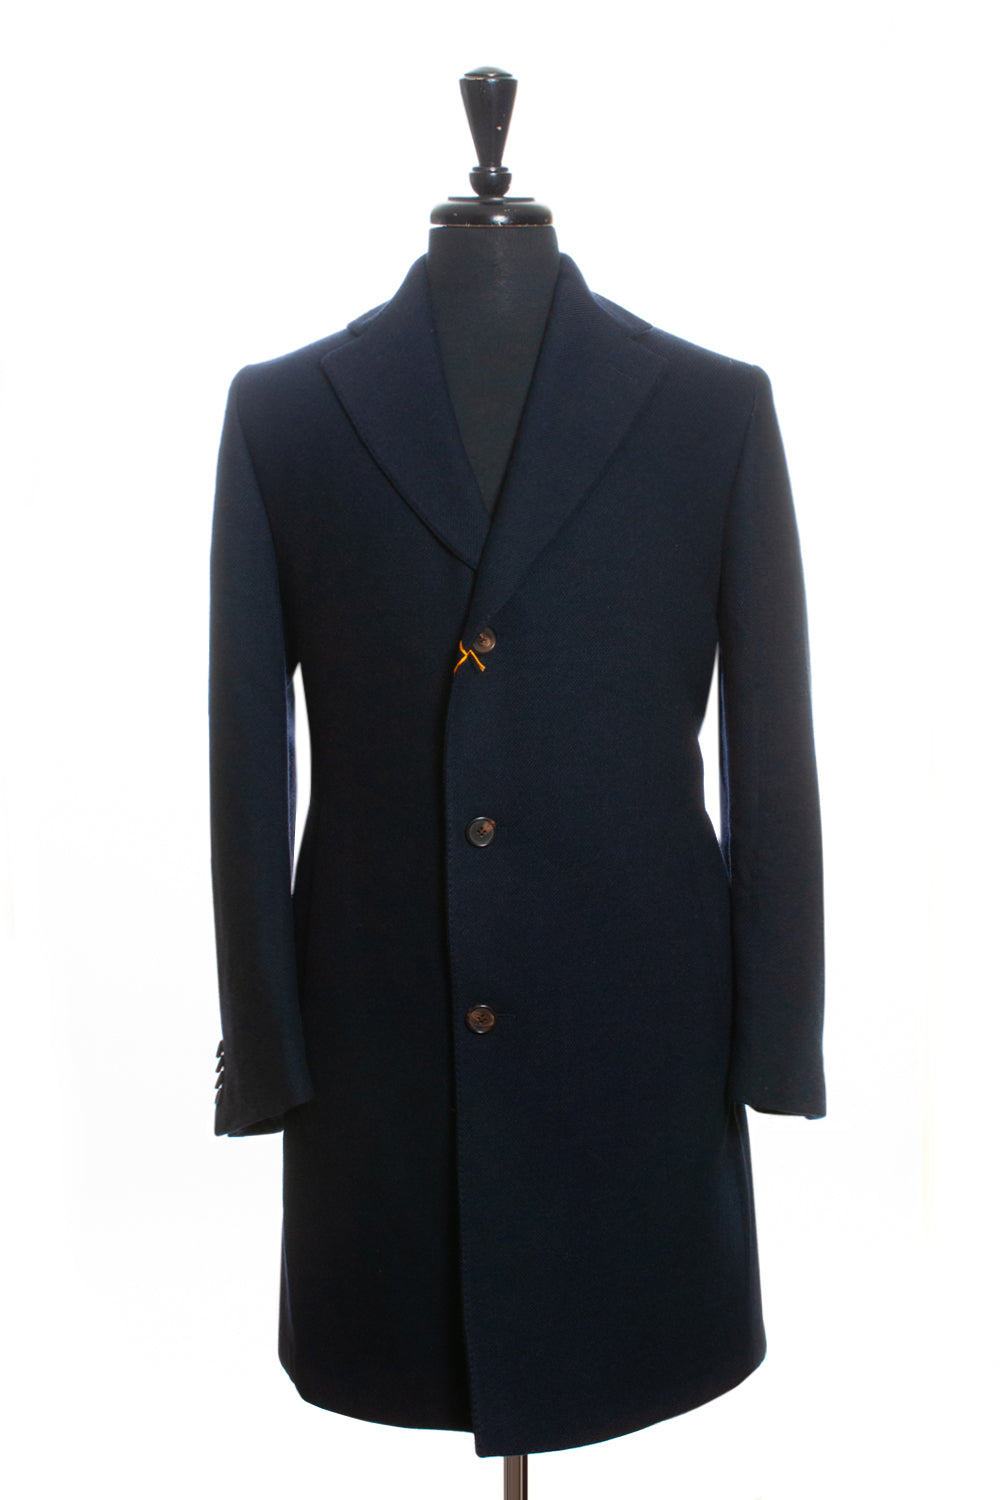 Etro NWT Navy Blue Wool Coat for Luxmrkt.com Menswear Consignment Edmonton